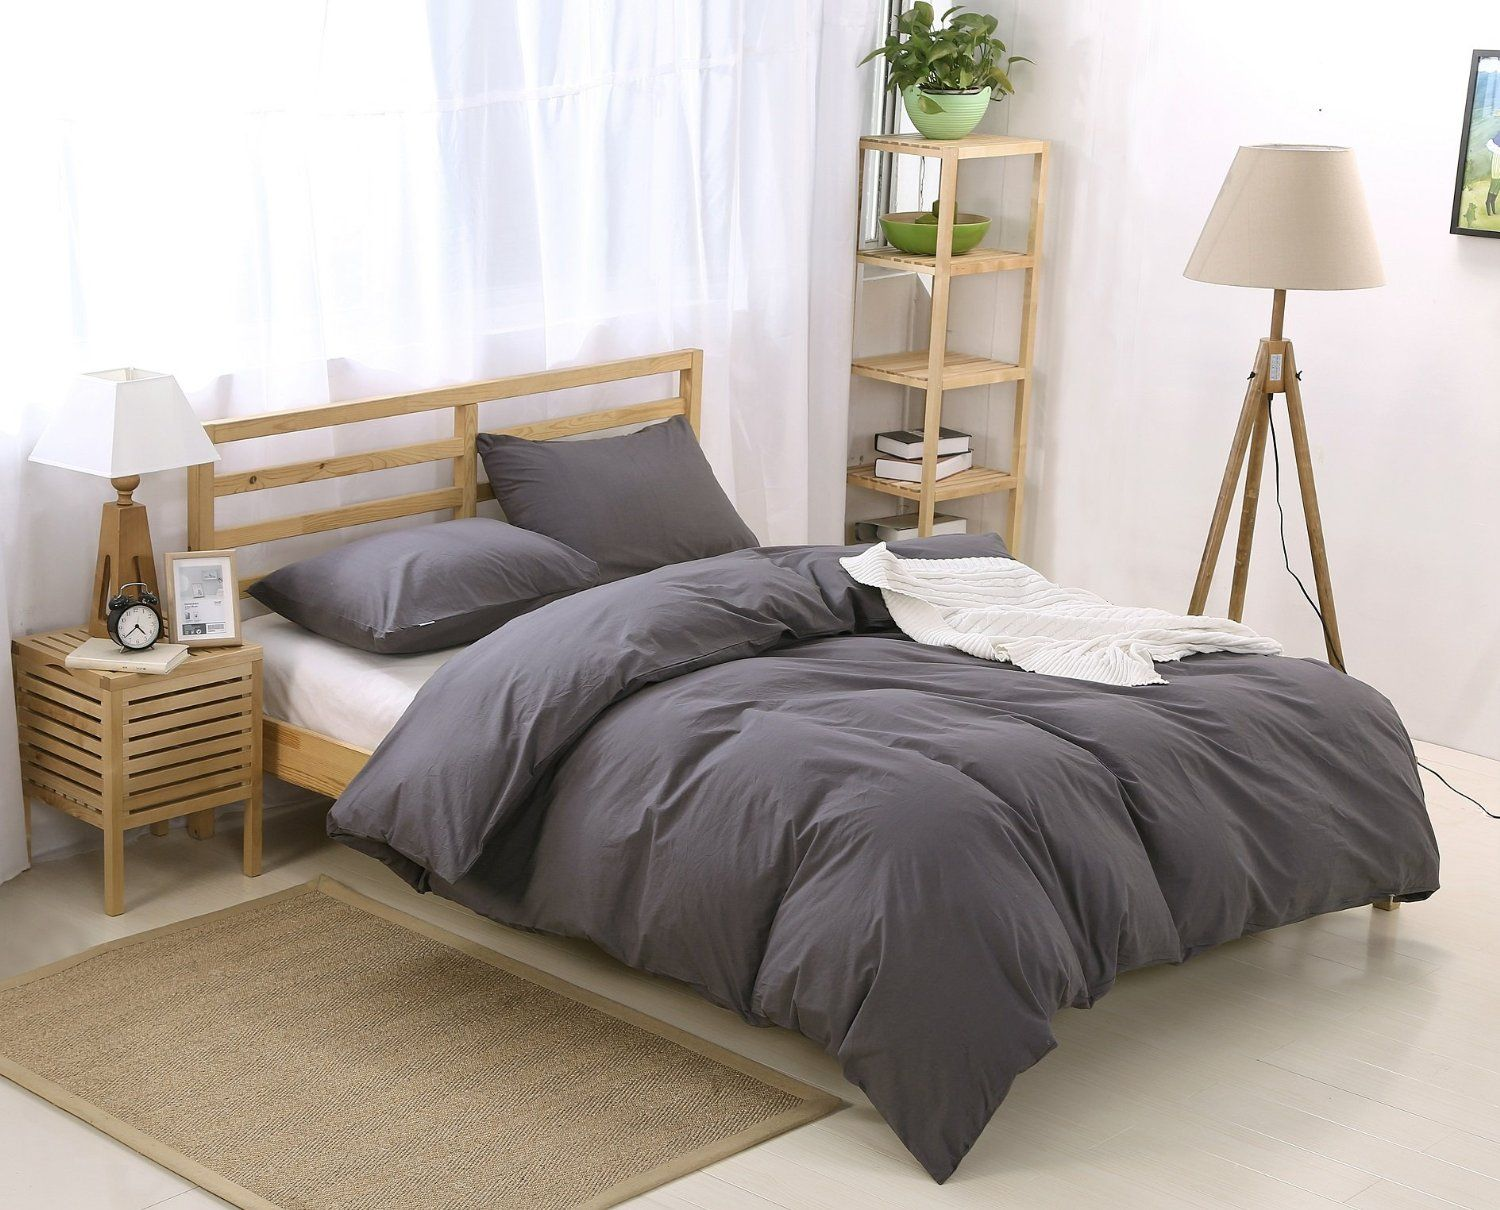 Colourful Snail Natural Washed Cotton Duvet Cover Set Ultra Soft And Easy Care Fade Resistant Queen Full Dark Grey